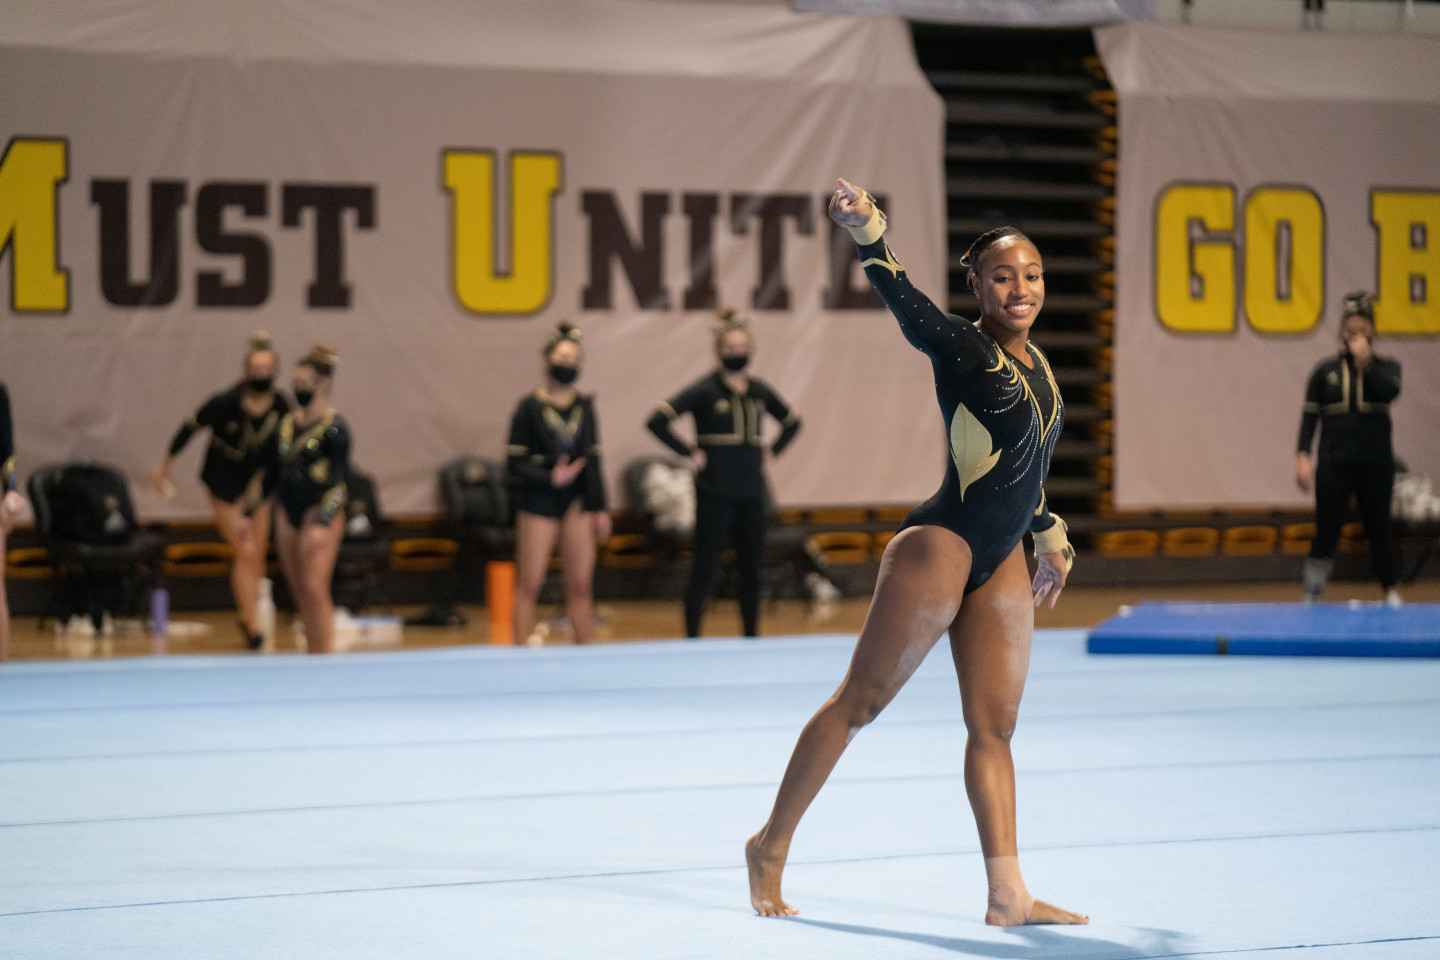 Stacie Harrison waves to the crowd during a meet.